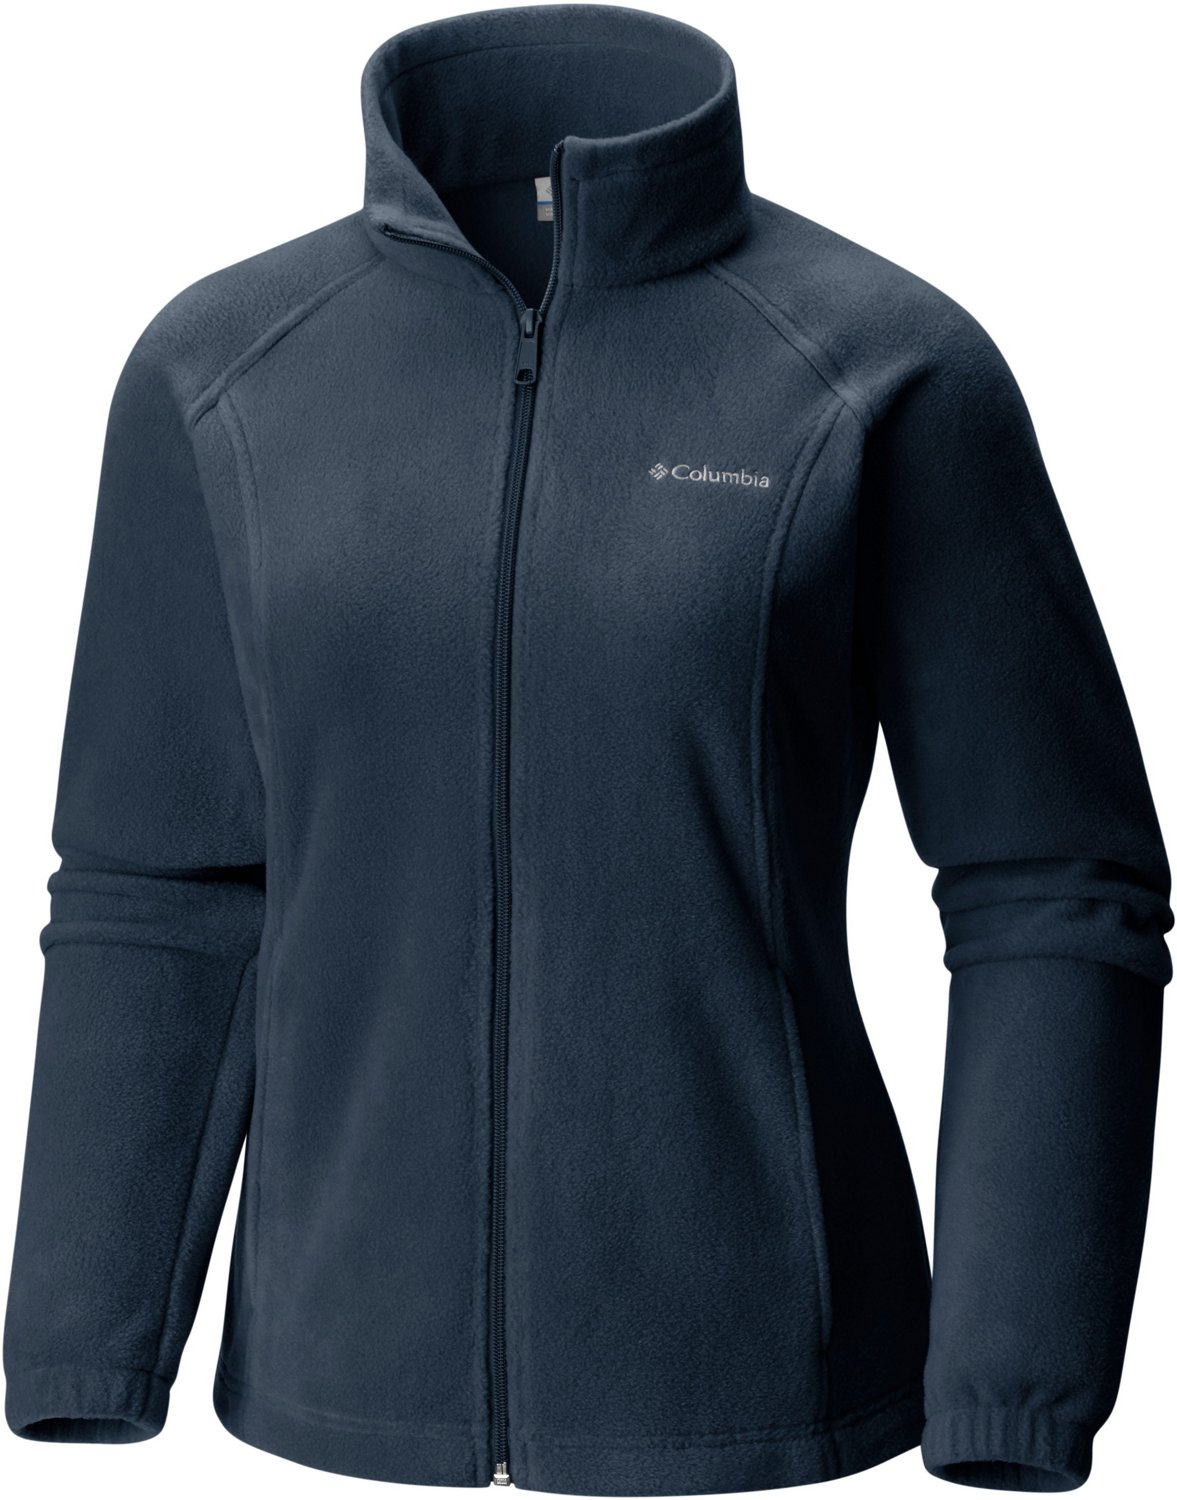 e30a61399a811 Display product reviews for Columbia Sportswear Women's Benton Springs Full  Zip Fleece Jacket